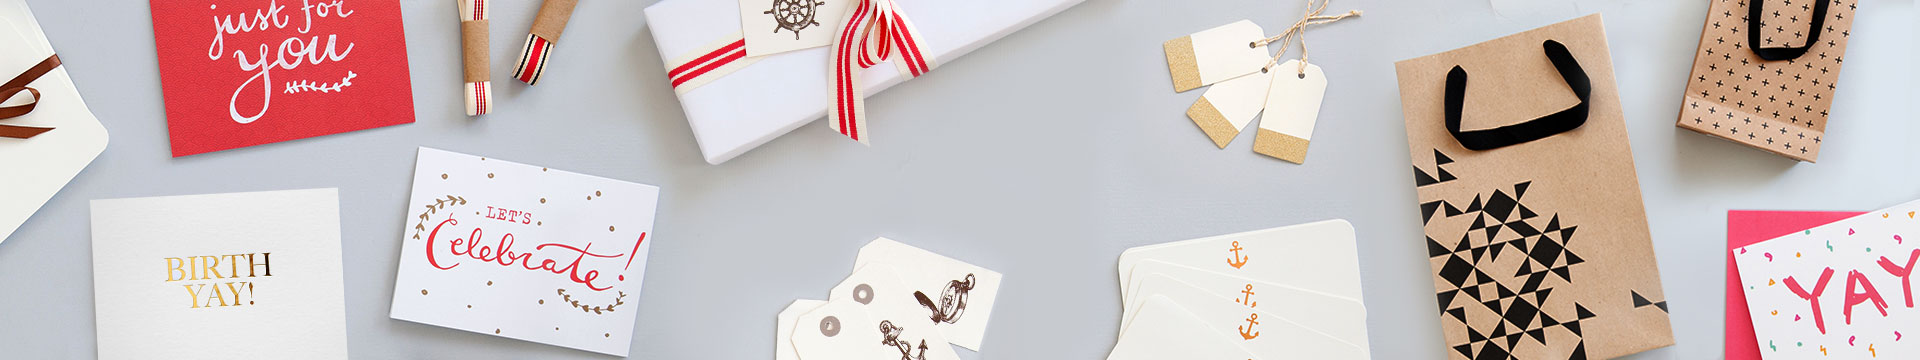 Banner image of Greeting cards and packaging